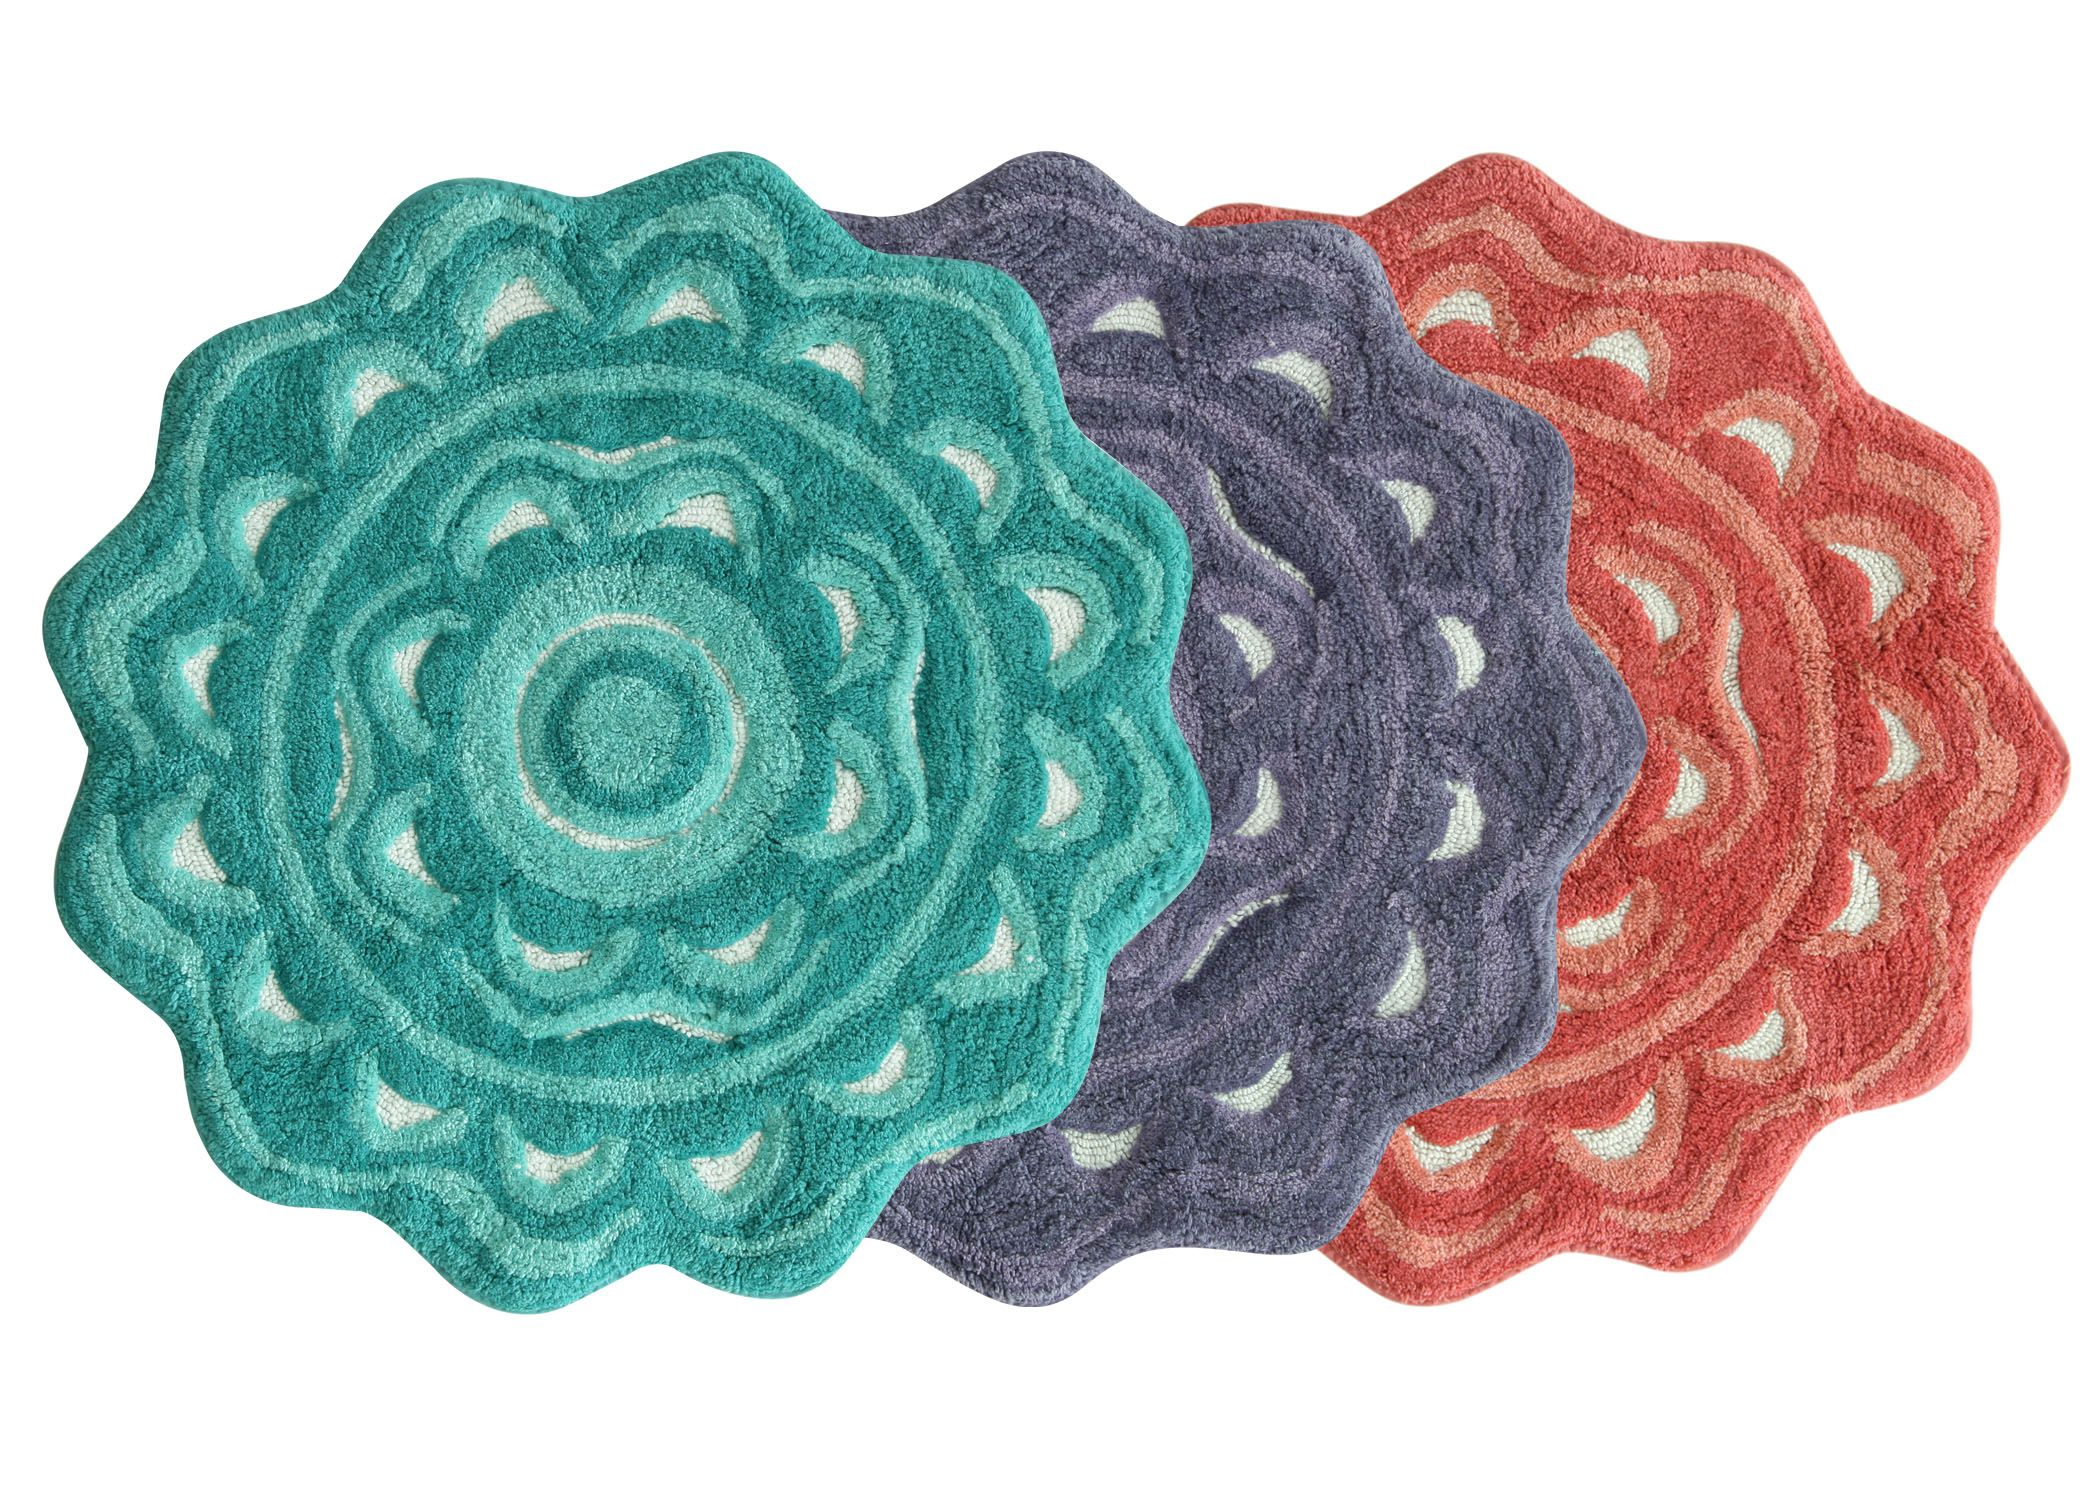 Bath mats from the Jessica Simpson Bath Collection